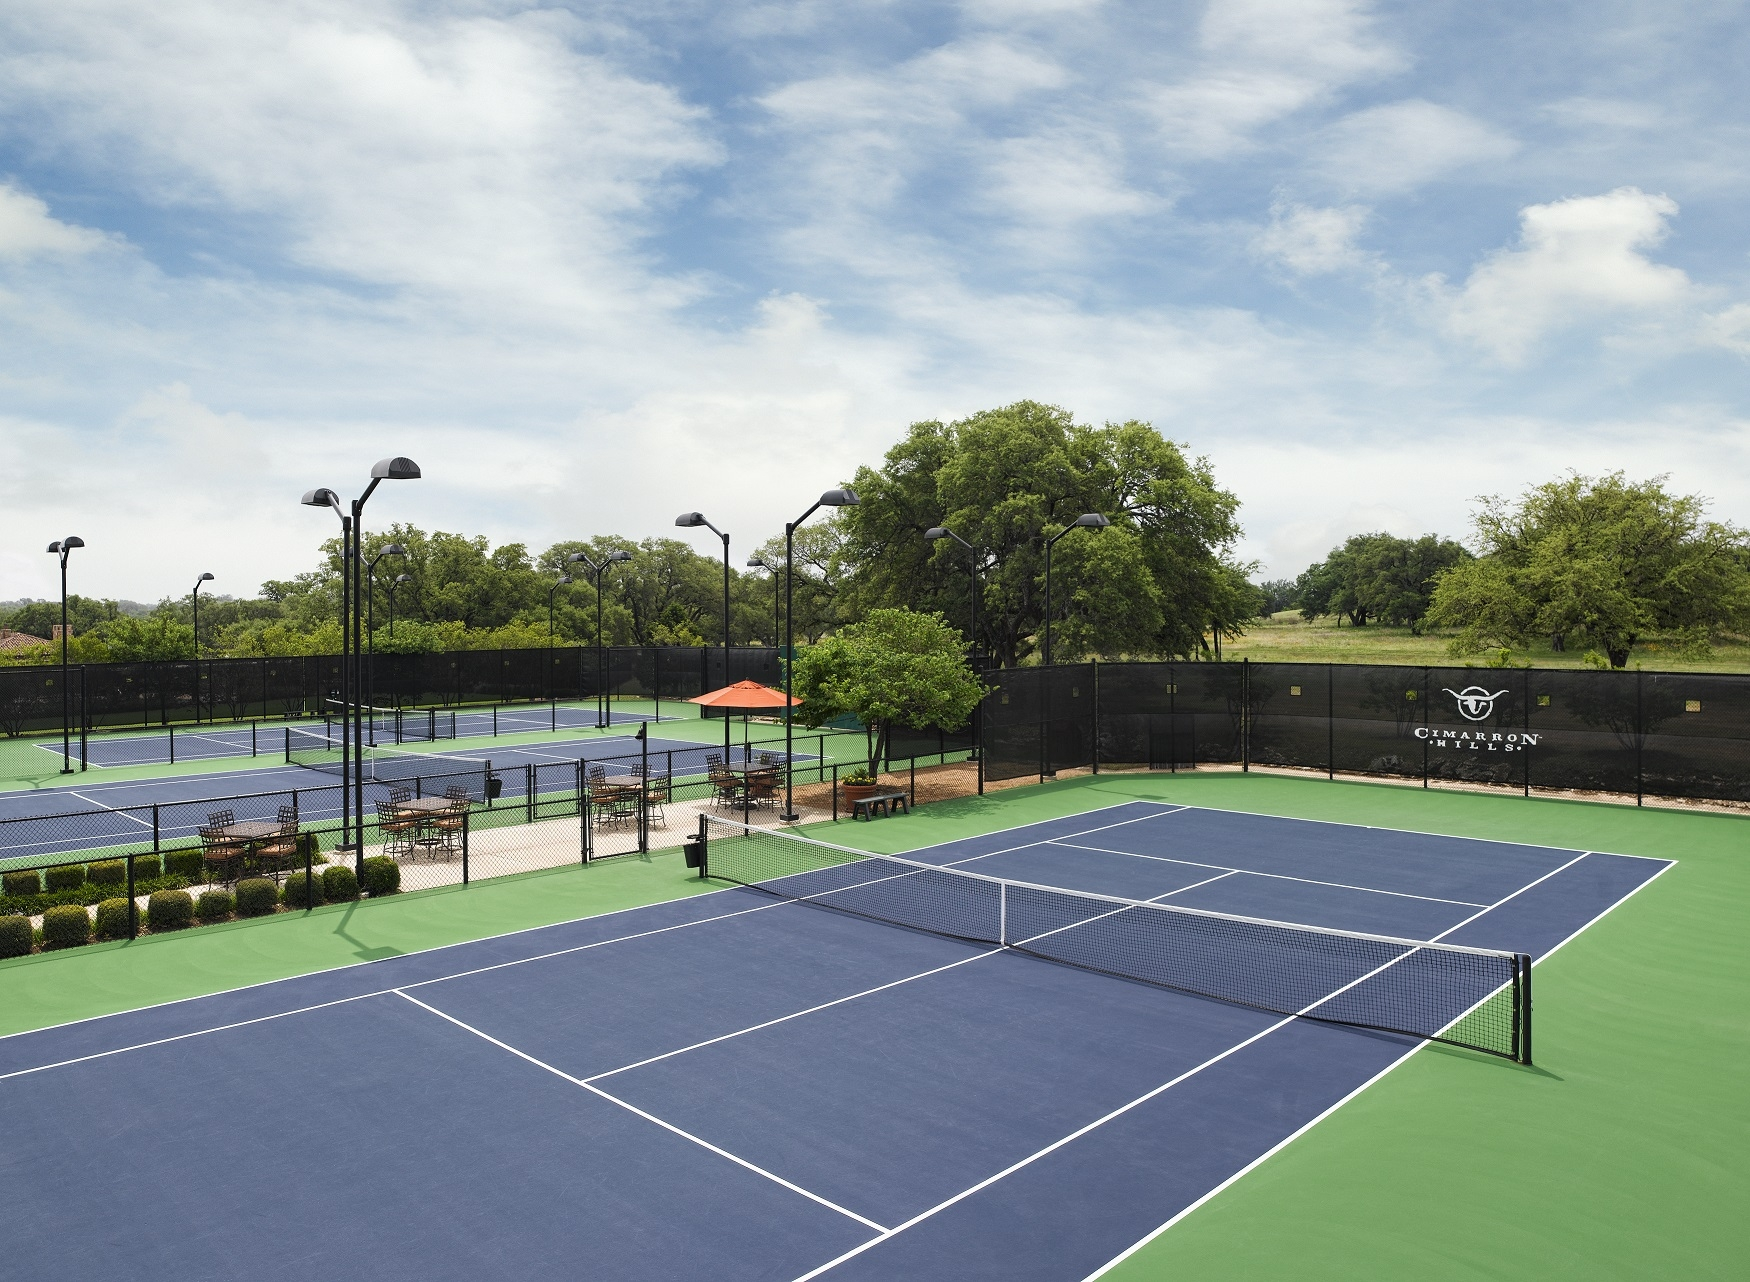 Cliff Drysdale Tennis Selected to Manage Cimarron Hills Country Club